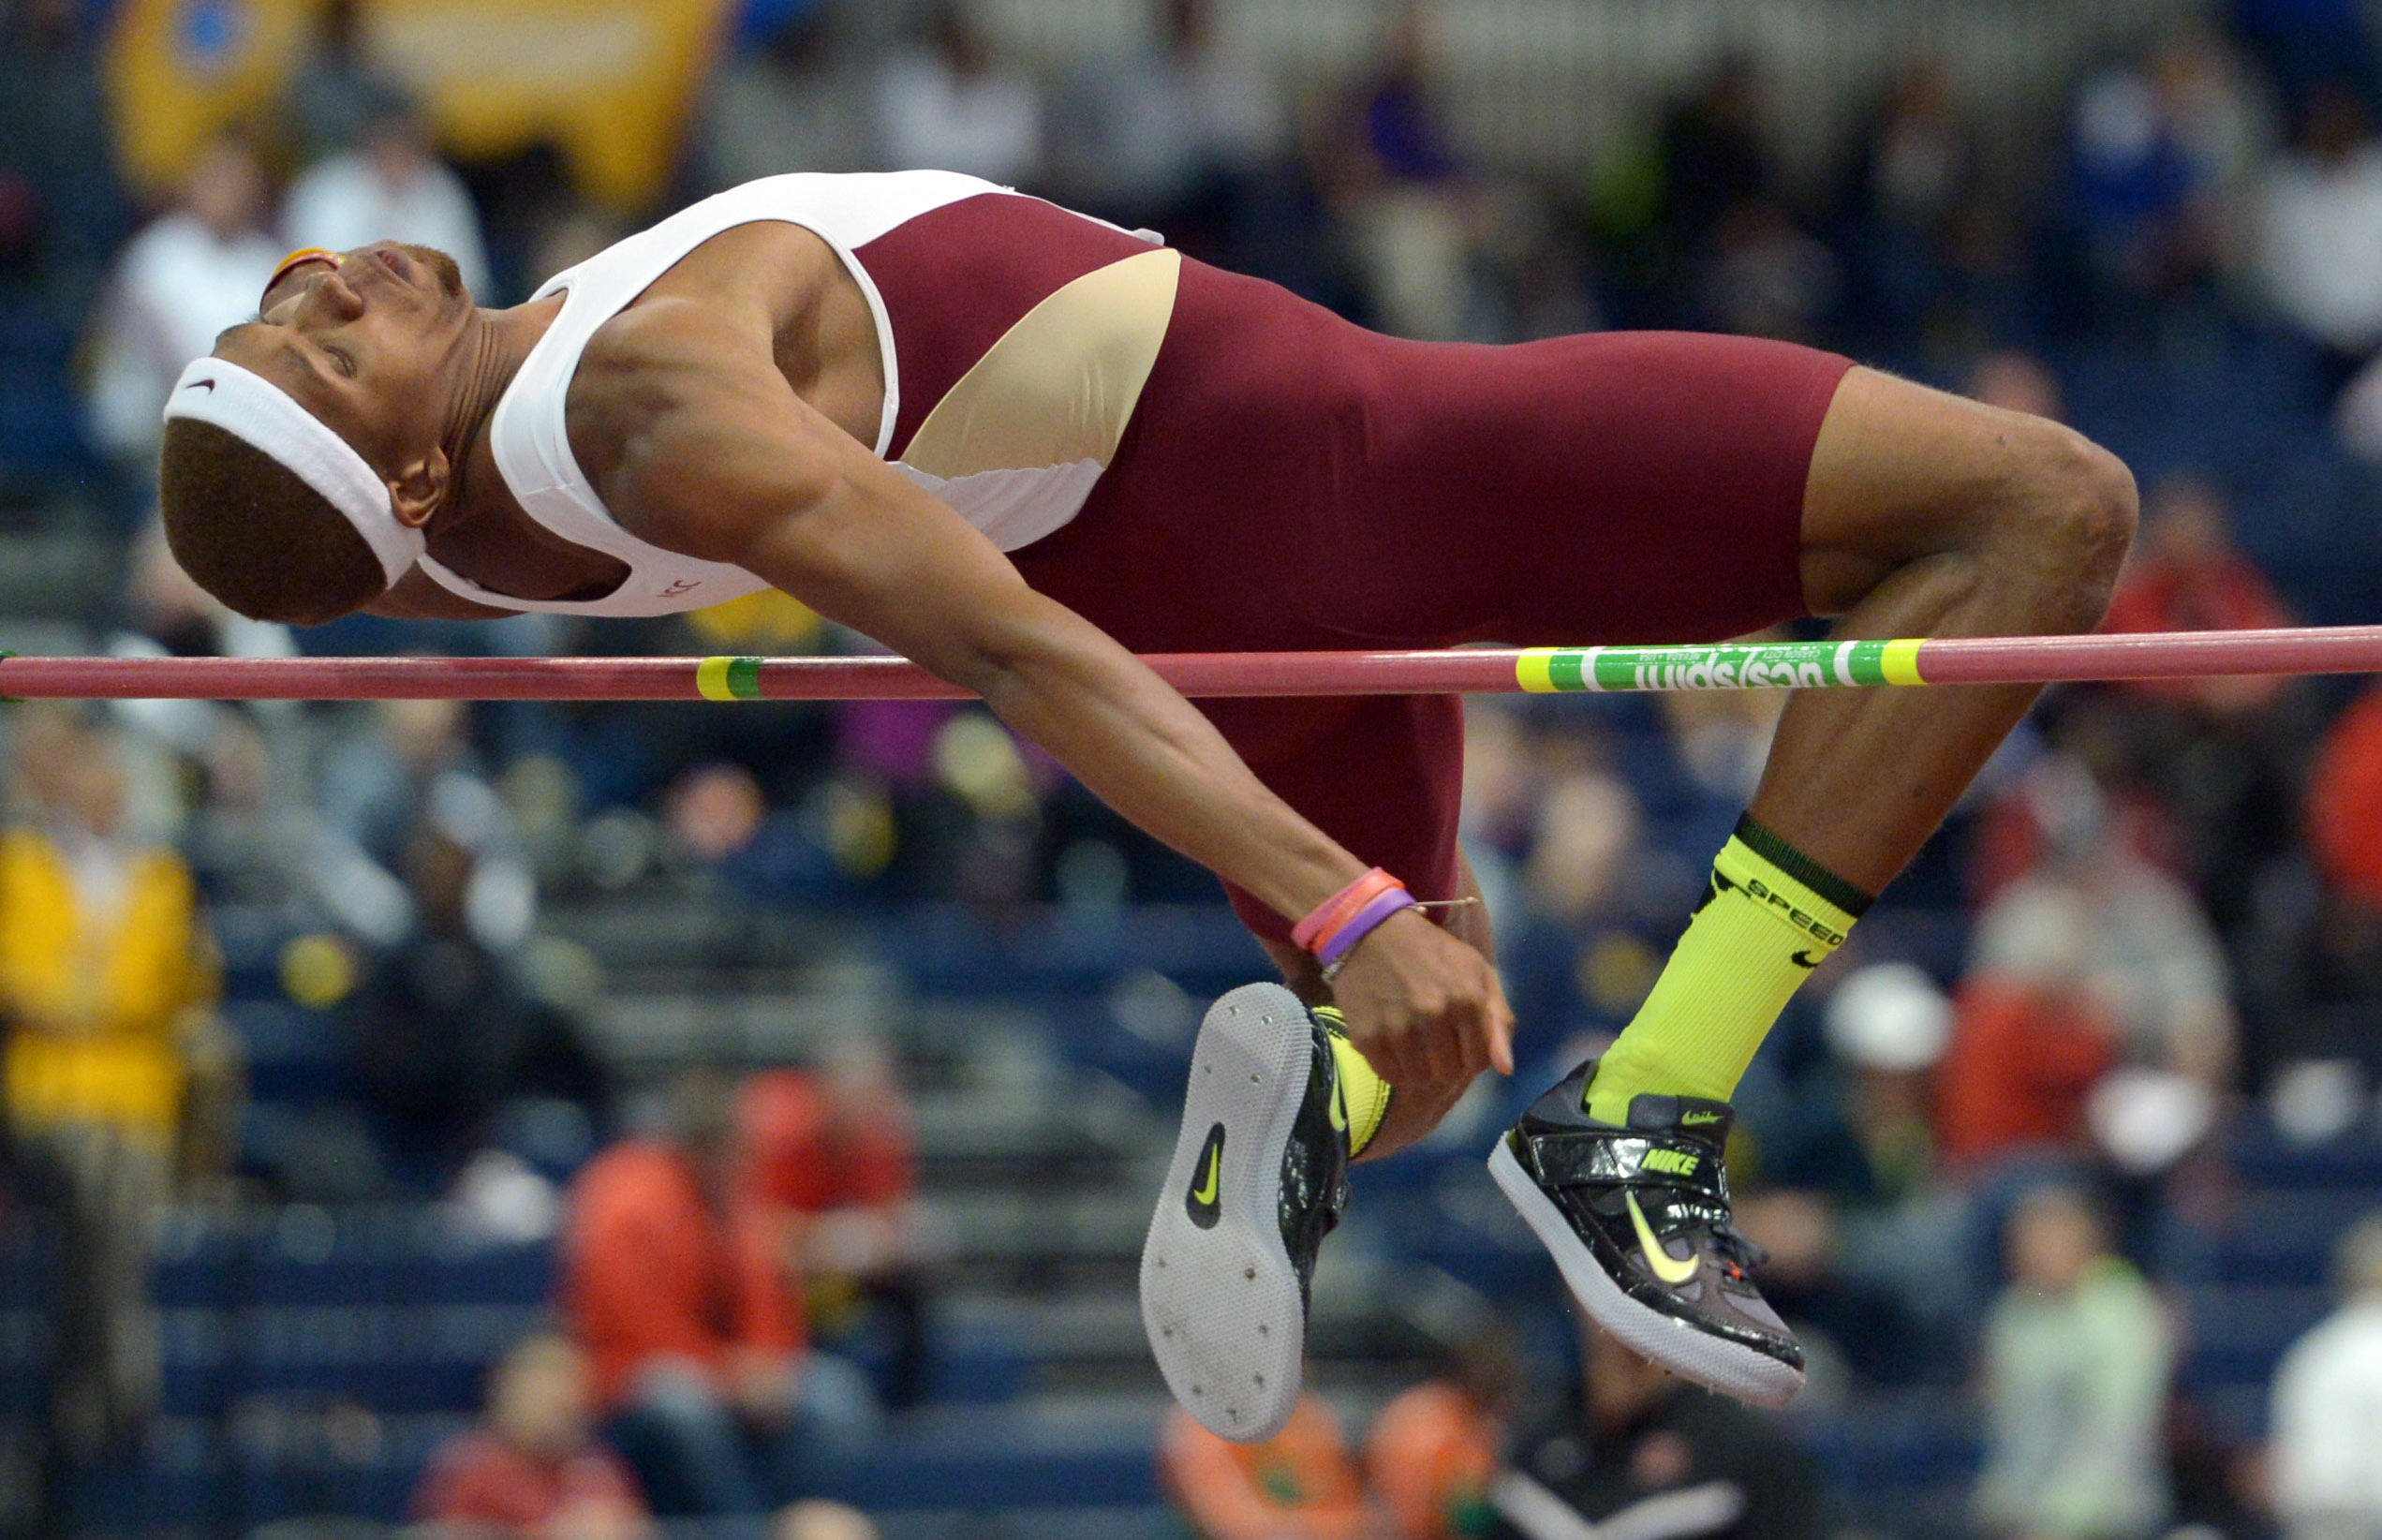 Mar 14, 2014; Albuquerque, NM, USA; James Harris of Florida State wins the high jump at 7-7 1/4 (2.32m) in the 2014 NCAA Indoor Championships at Albuquerque Convention Center. Mandatory Credit: Kirby Lee-USA TODAY Sports